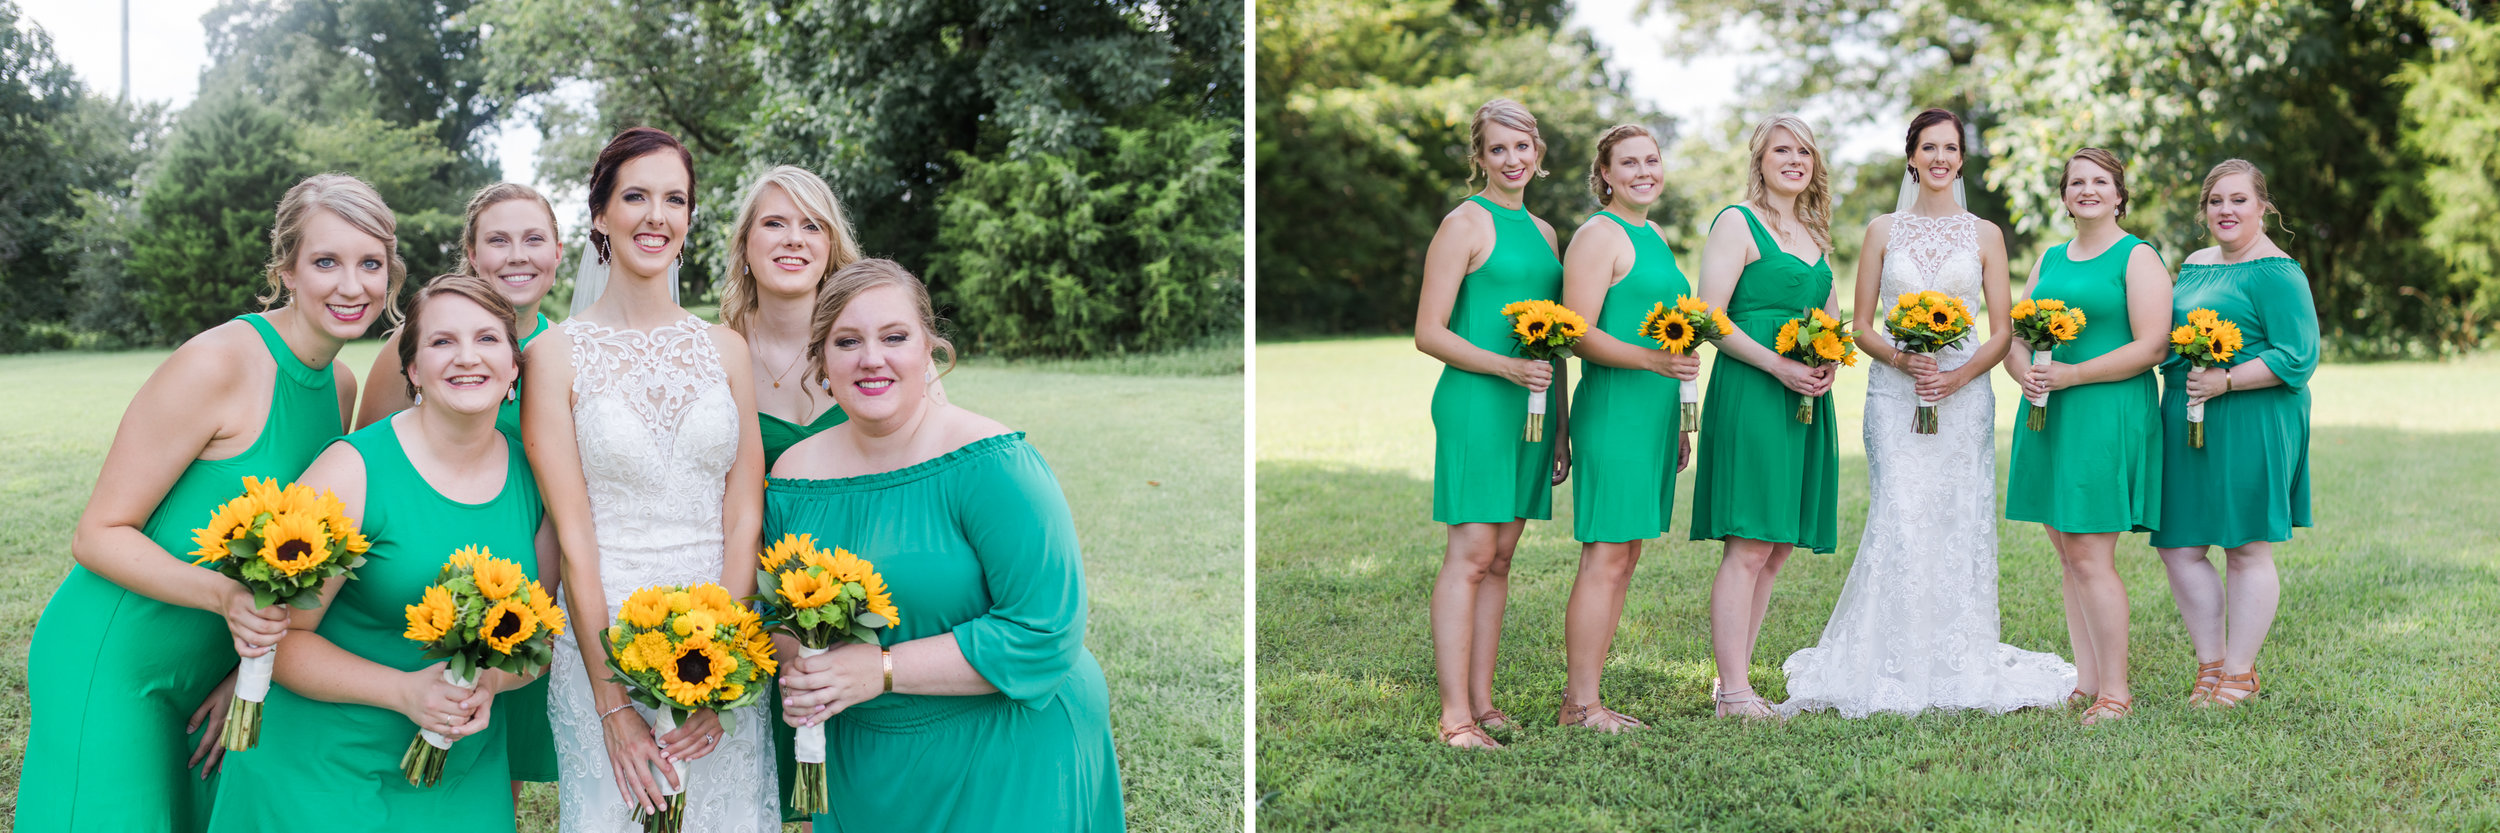 Bentonville Wedding Photographer Holland Barn 7.jpg